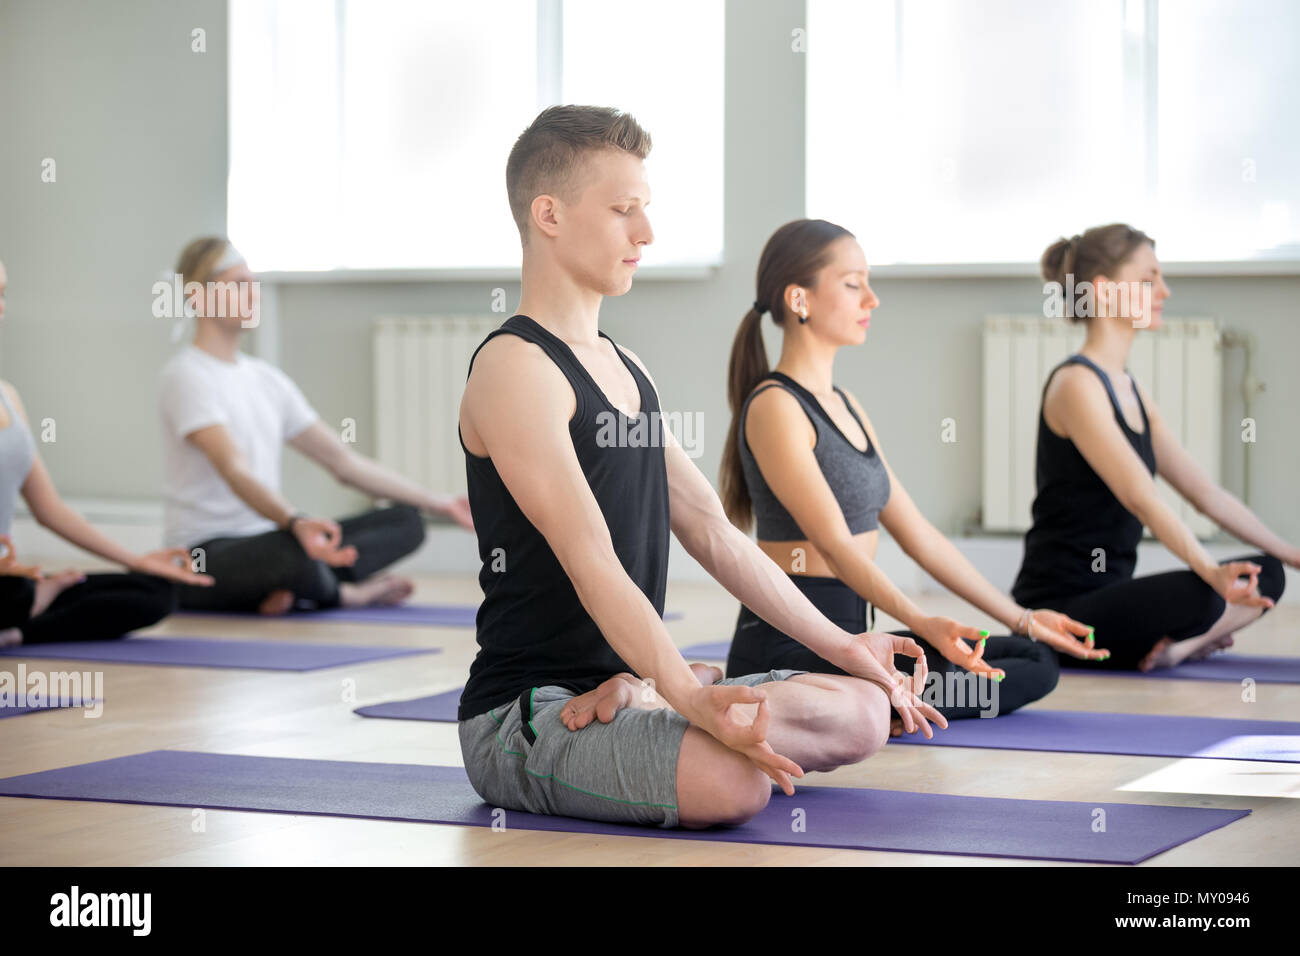 Group of young sporty people doing yoga in gym, Sukhasana exercise, Easy Seat pose, working out, indoor full length, students training in sport club,  Stock Photo